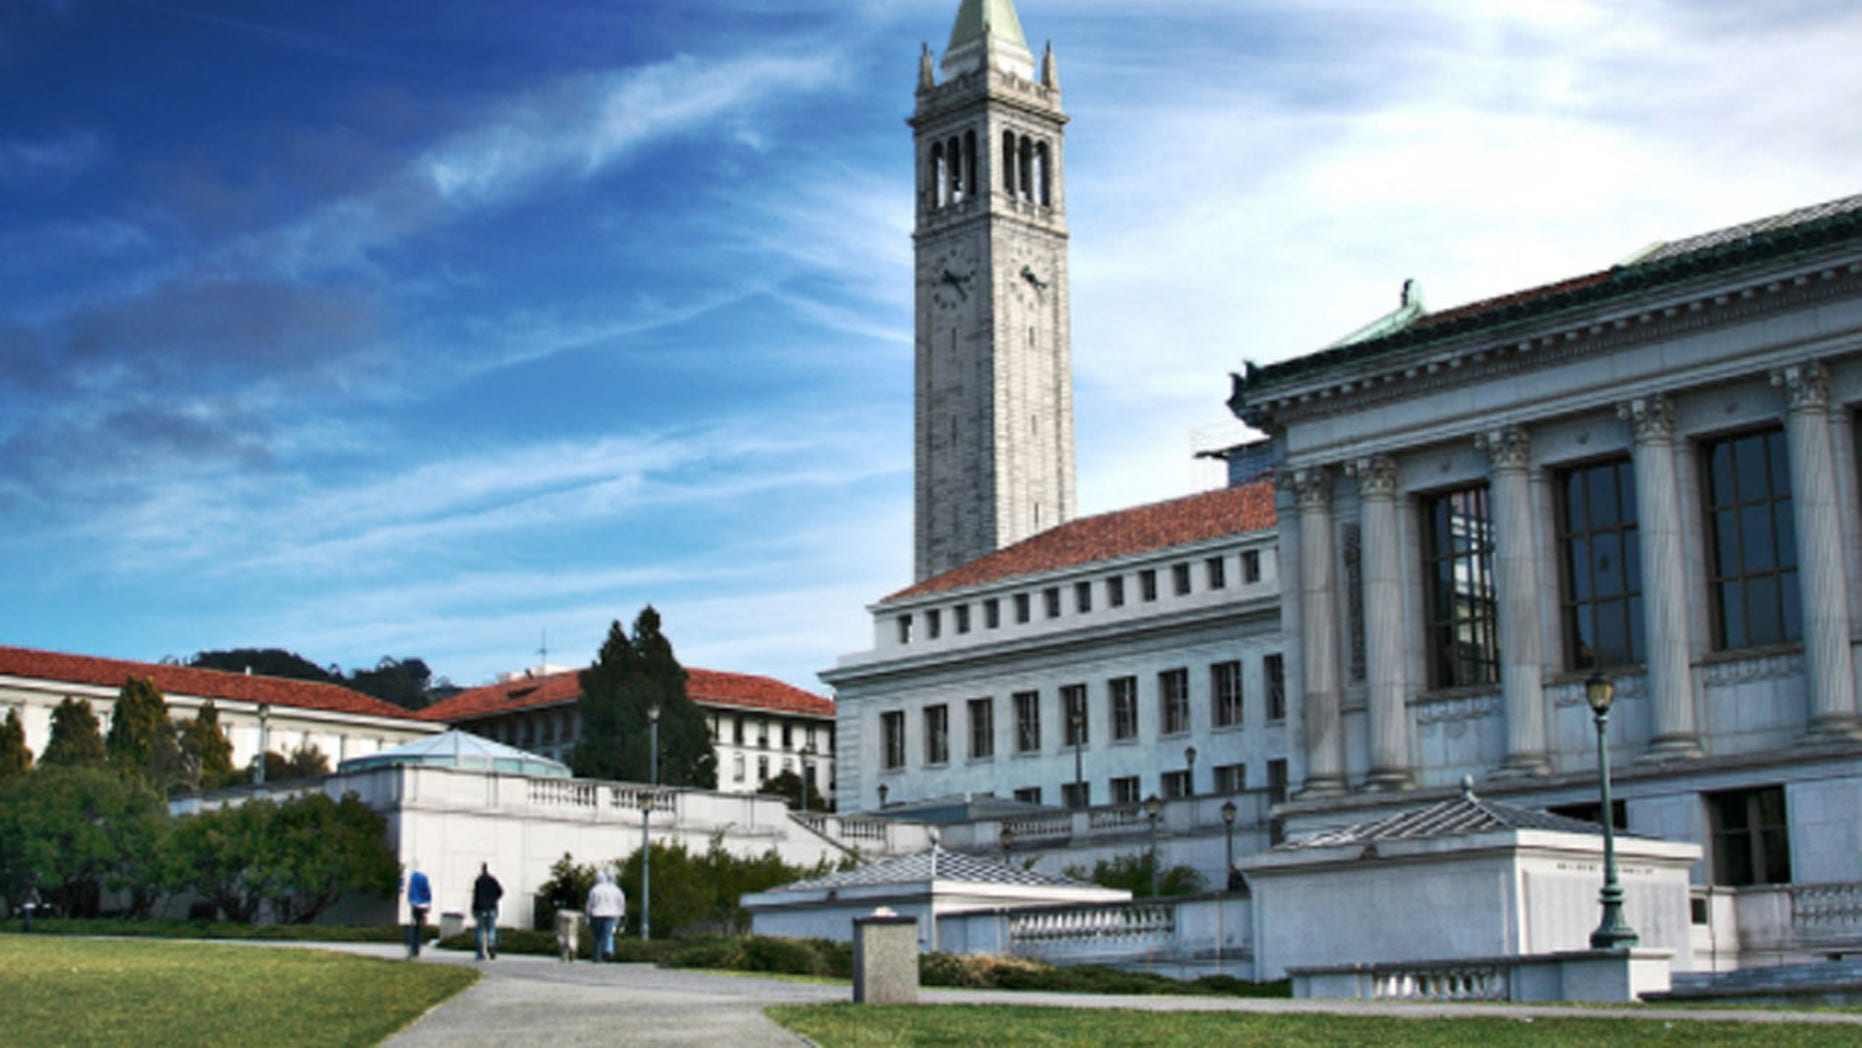 The Sather Tower on the University of California, Berkeley campus.